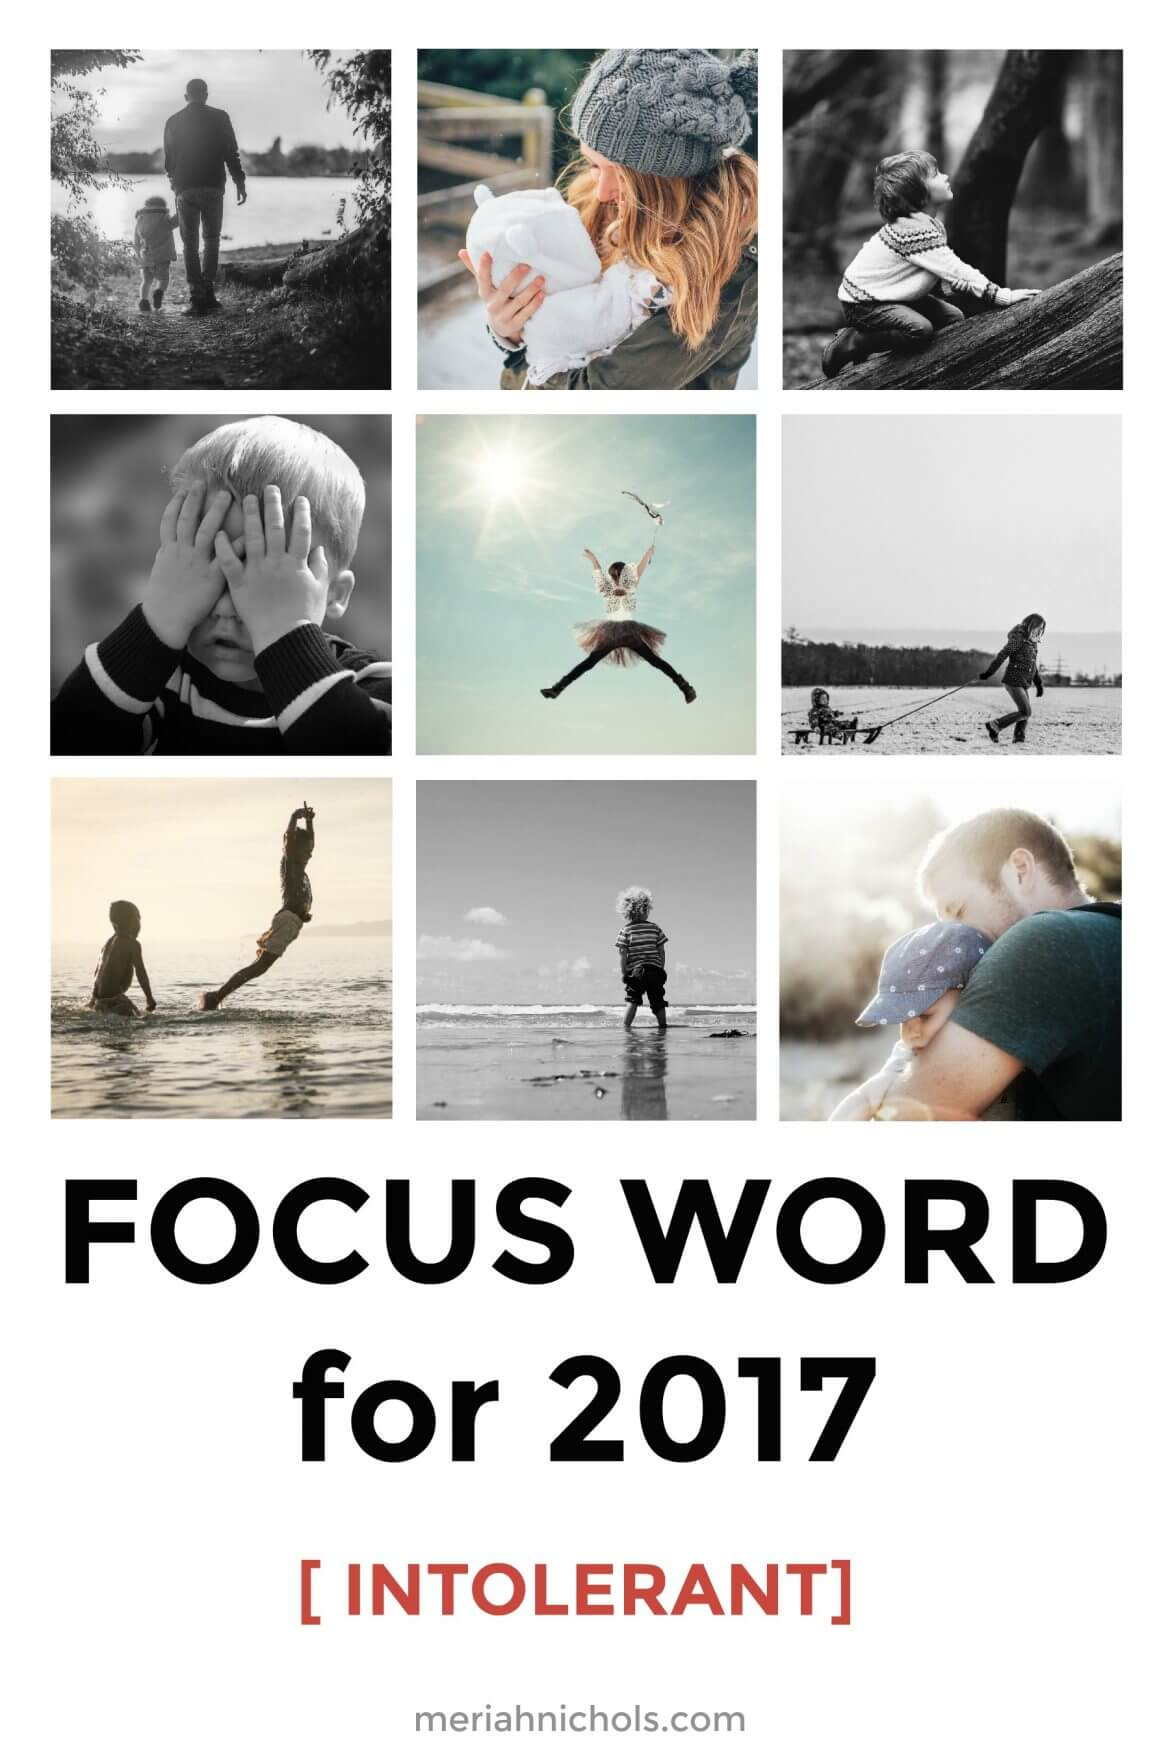 """focus word for 2017: intolerant. image description of an image collage of bright photos, on the bottom reads """"focus word for 2017 [intolerant] meriahnichols.com"""